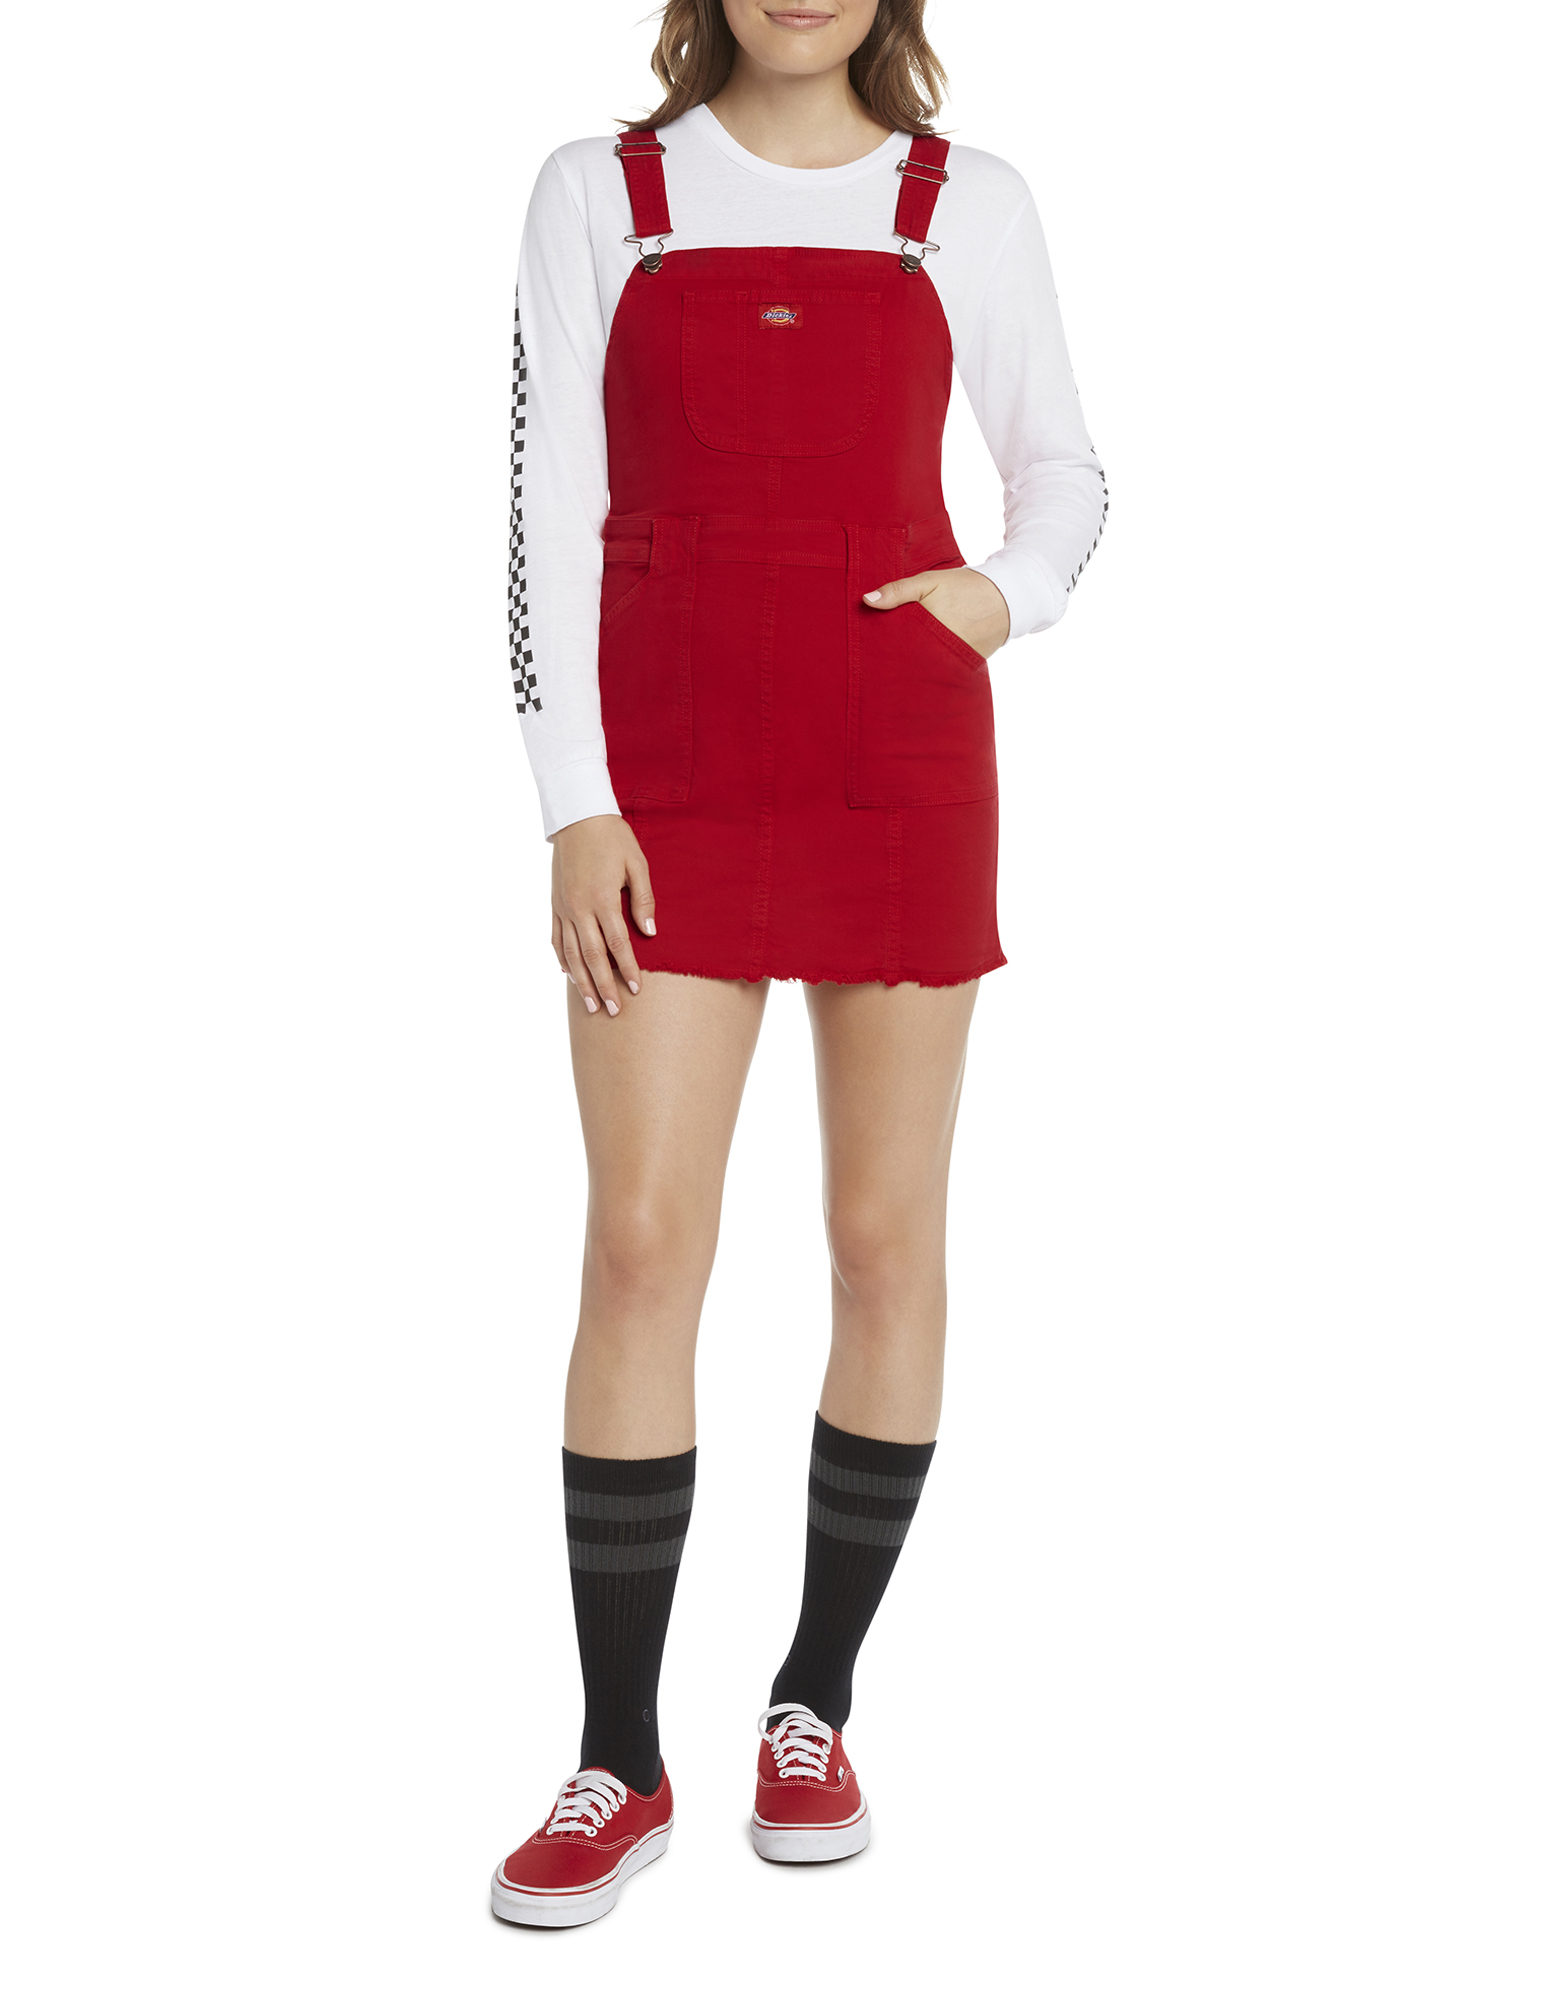 Dickies Girl Juniors' Overall Dress - Red (RD)